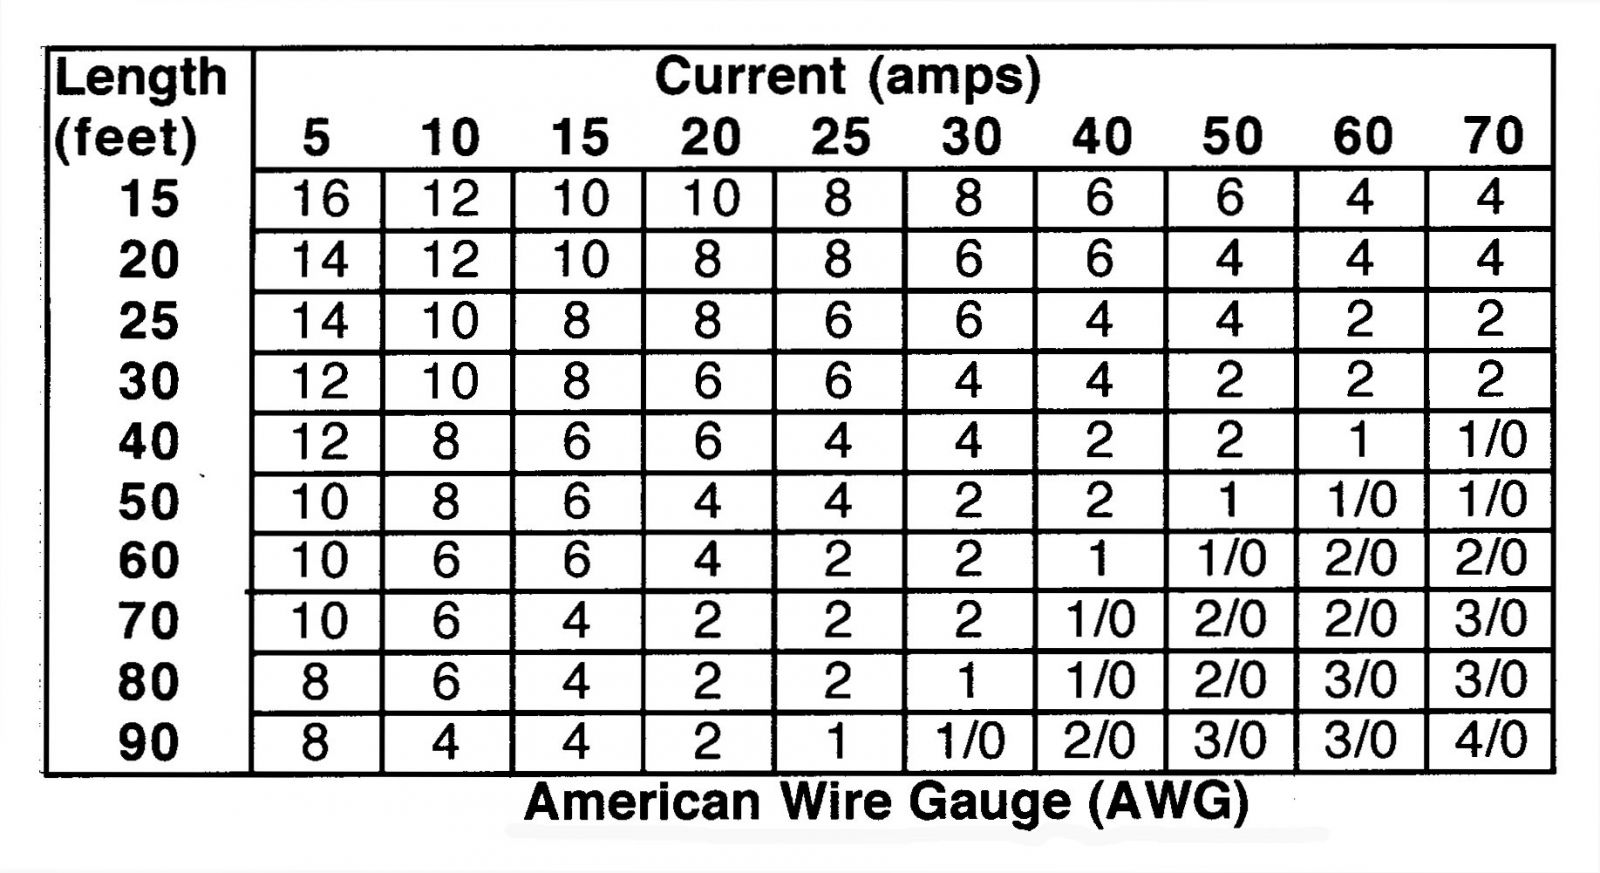 House wiring cable size wire center grounding electrical systems hotrod hotline rh hotrodhotline com house wiring cable size pdf house wiring cable size chart greentooth Choice Image